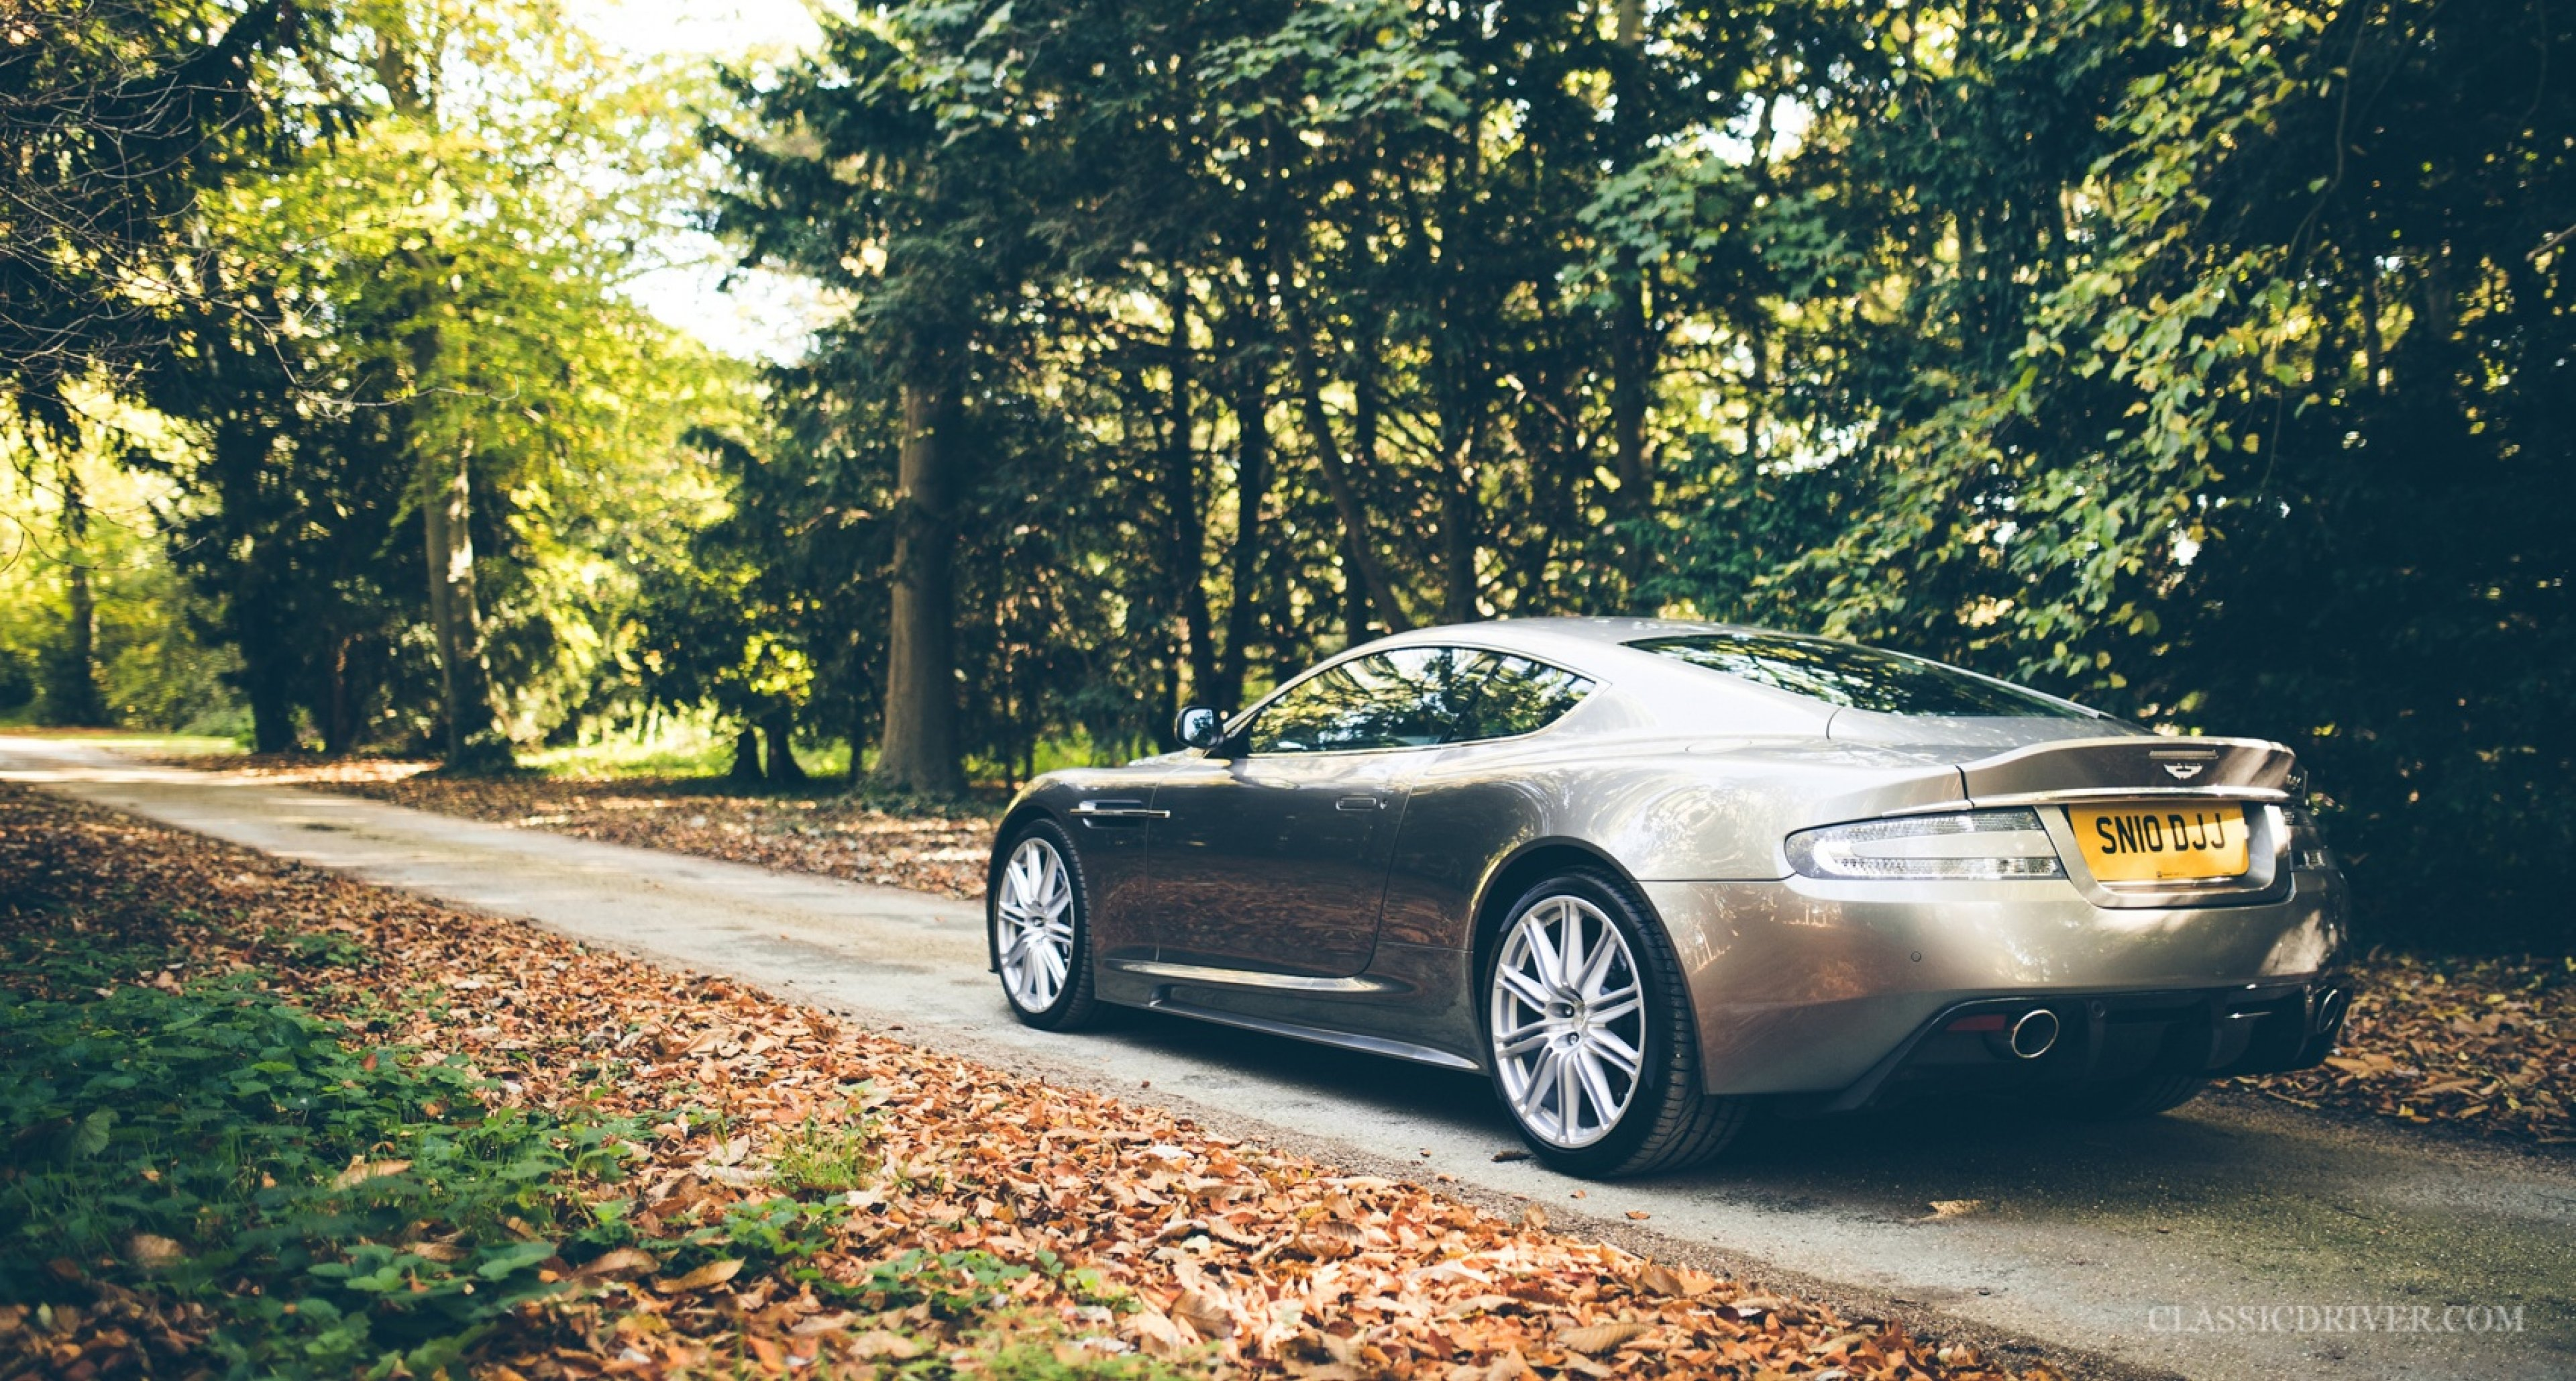 Vanquish Or Dbs Which Aston Martin V12 Should You Buy Now Classic Driver Magazine